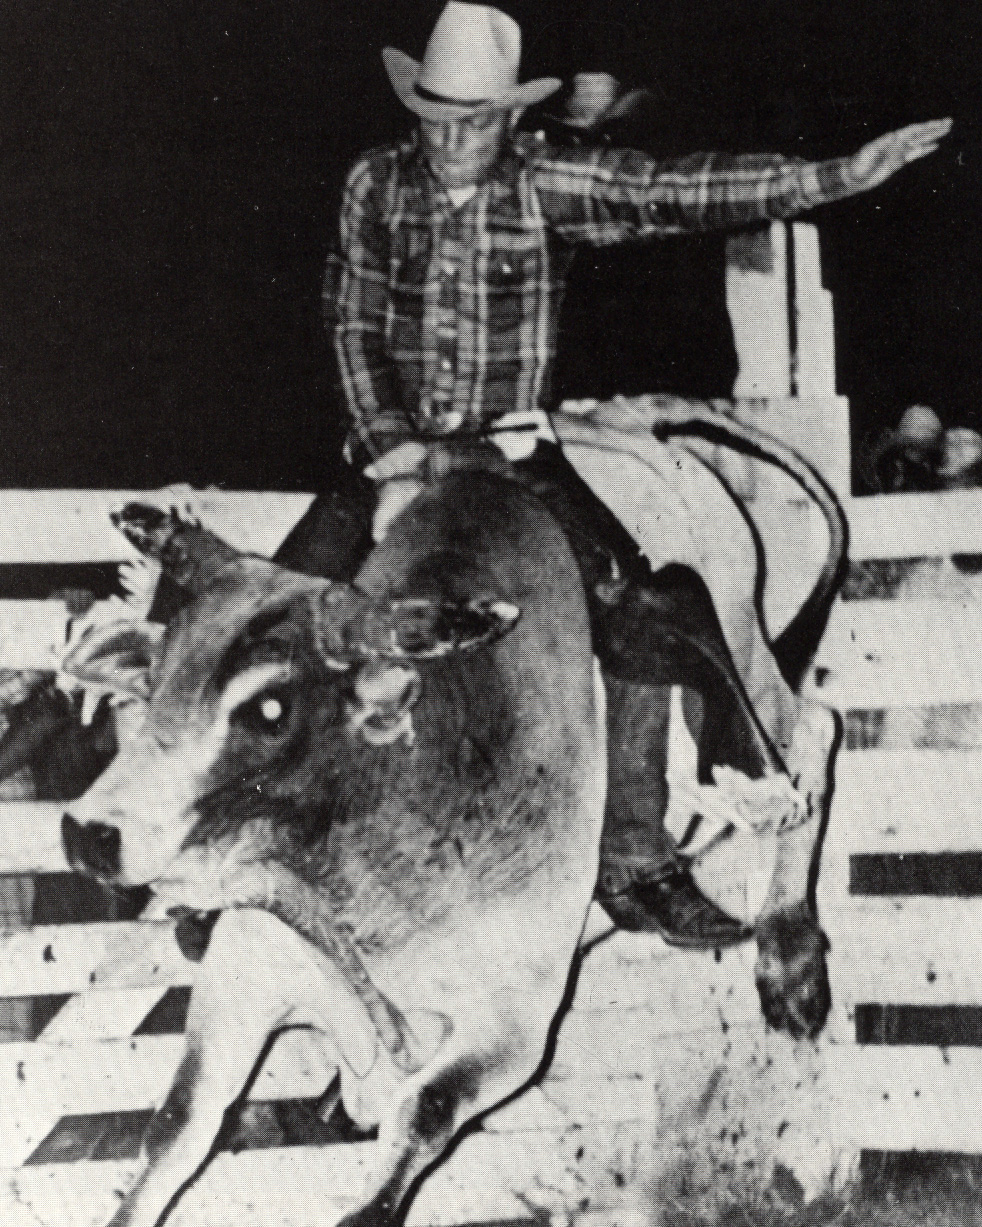 First rodeo club president, Mike Bratt, 1969.